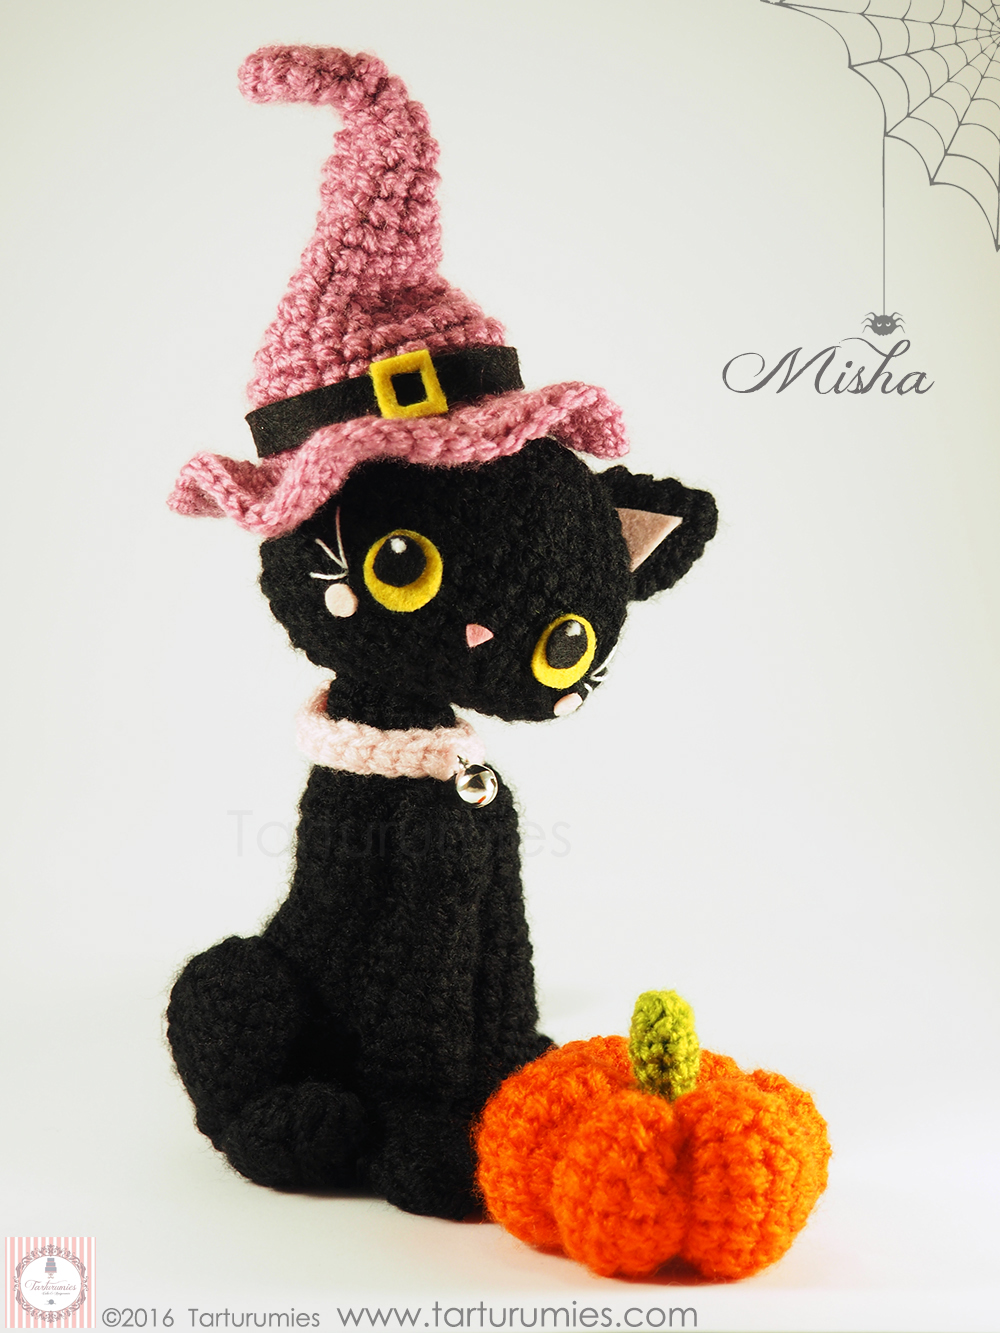 Crochet Amigurumi Halloween Black Cat Patterns (FREE) | BeesDIY.com | 1333x1000